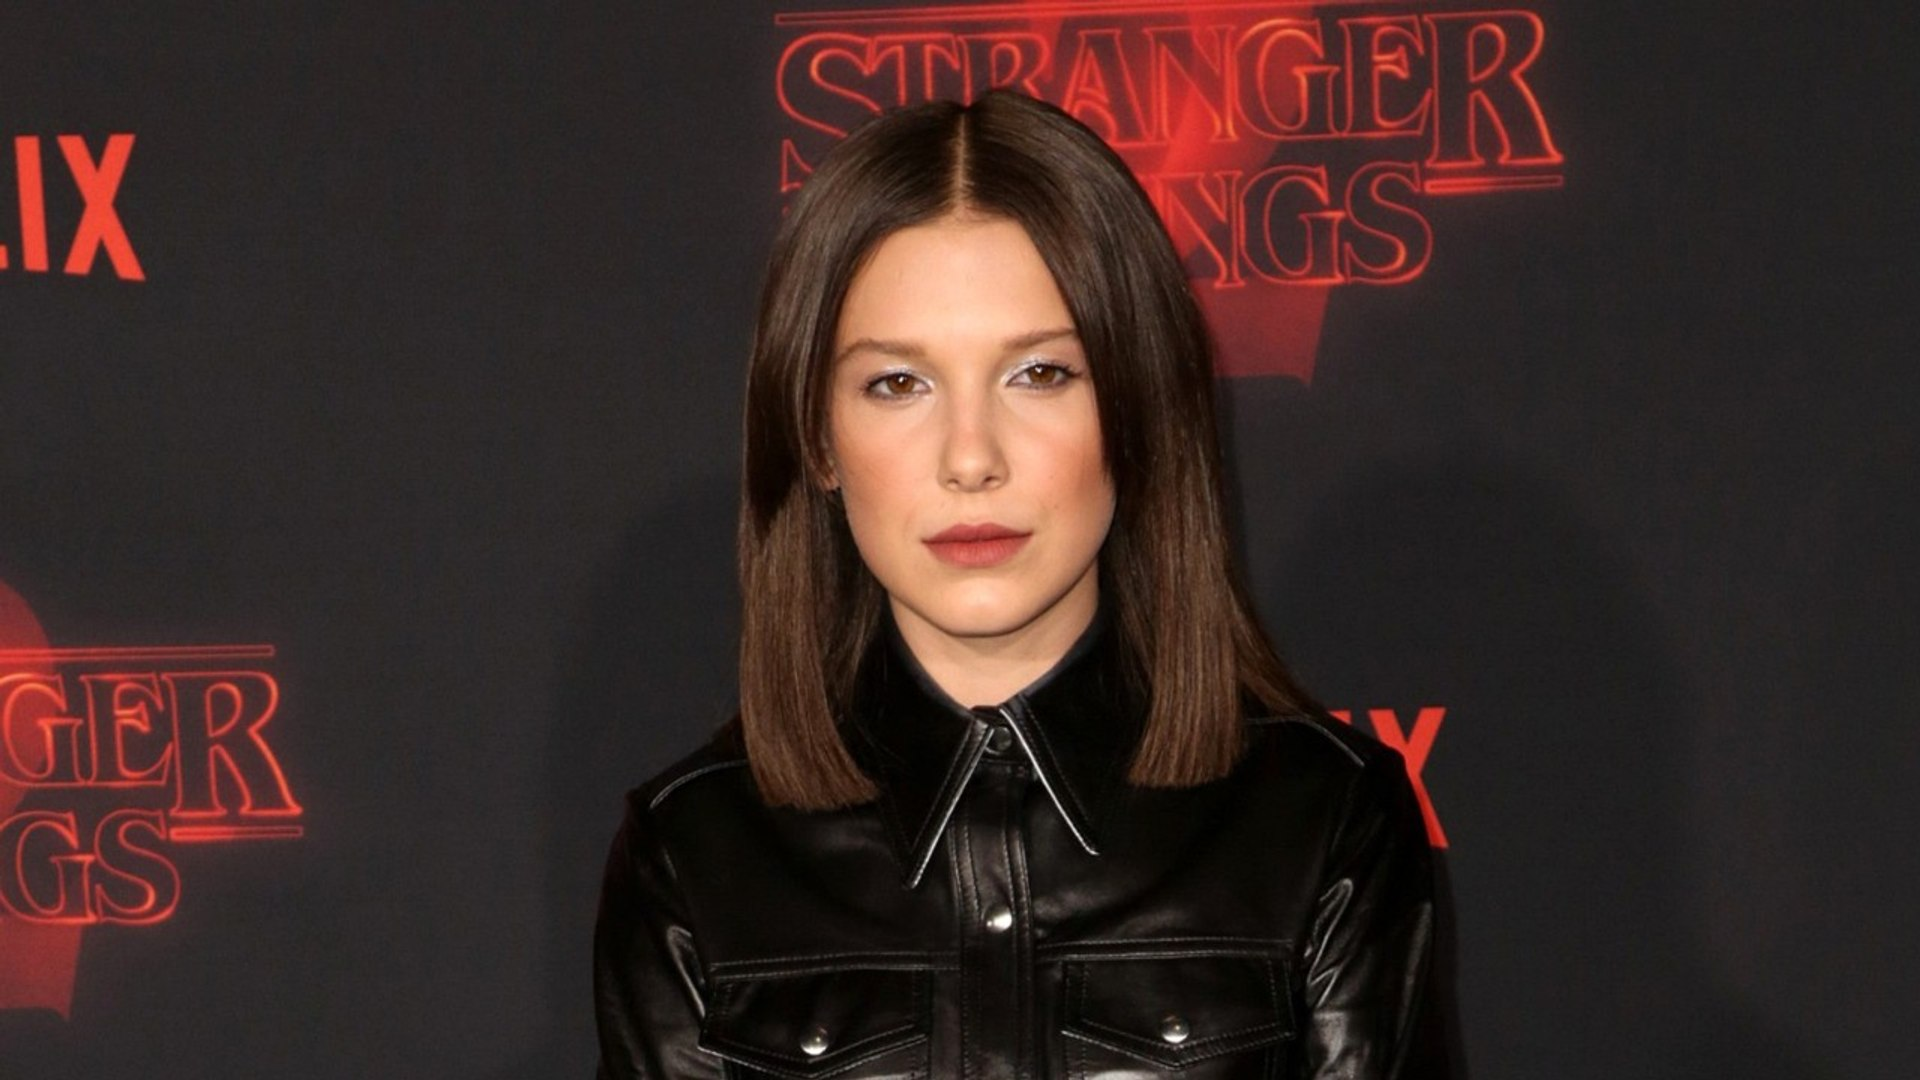 'Stranger Things' Actress Quits Twitter